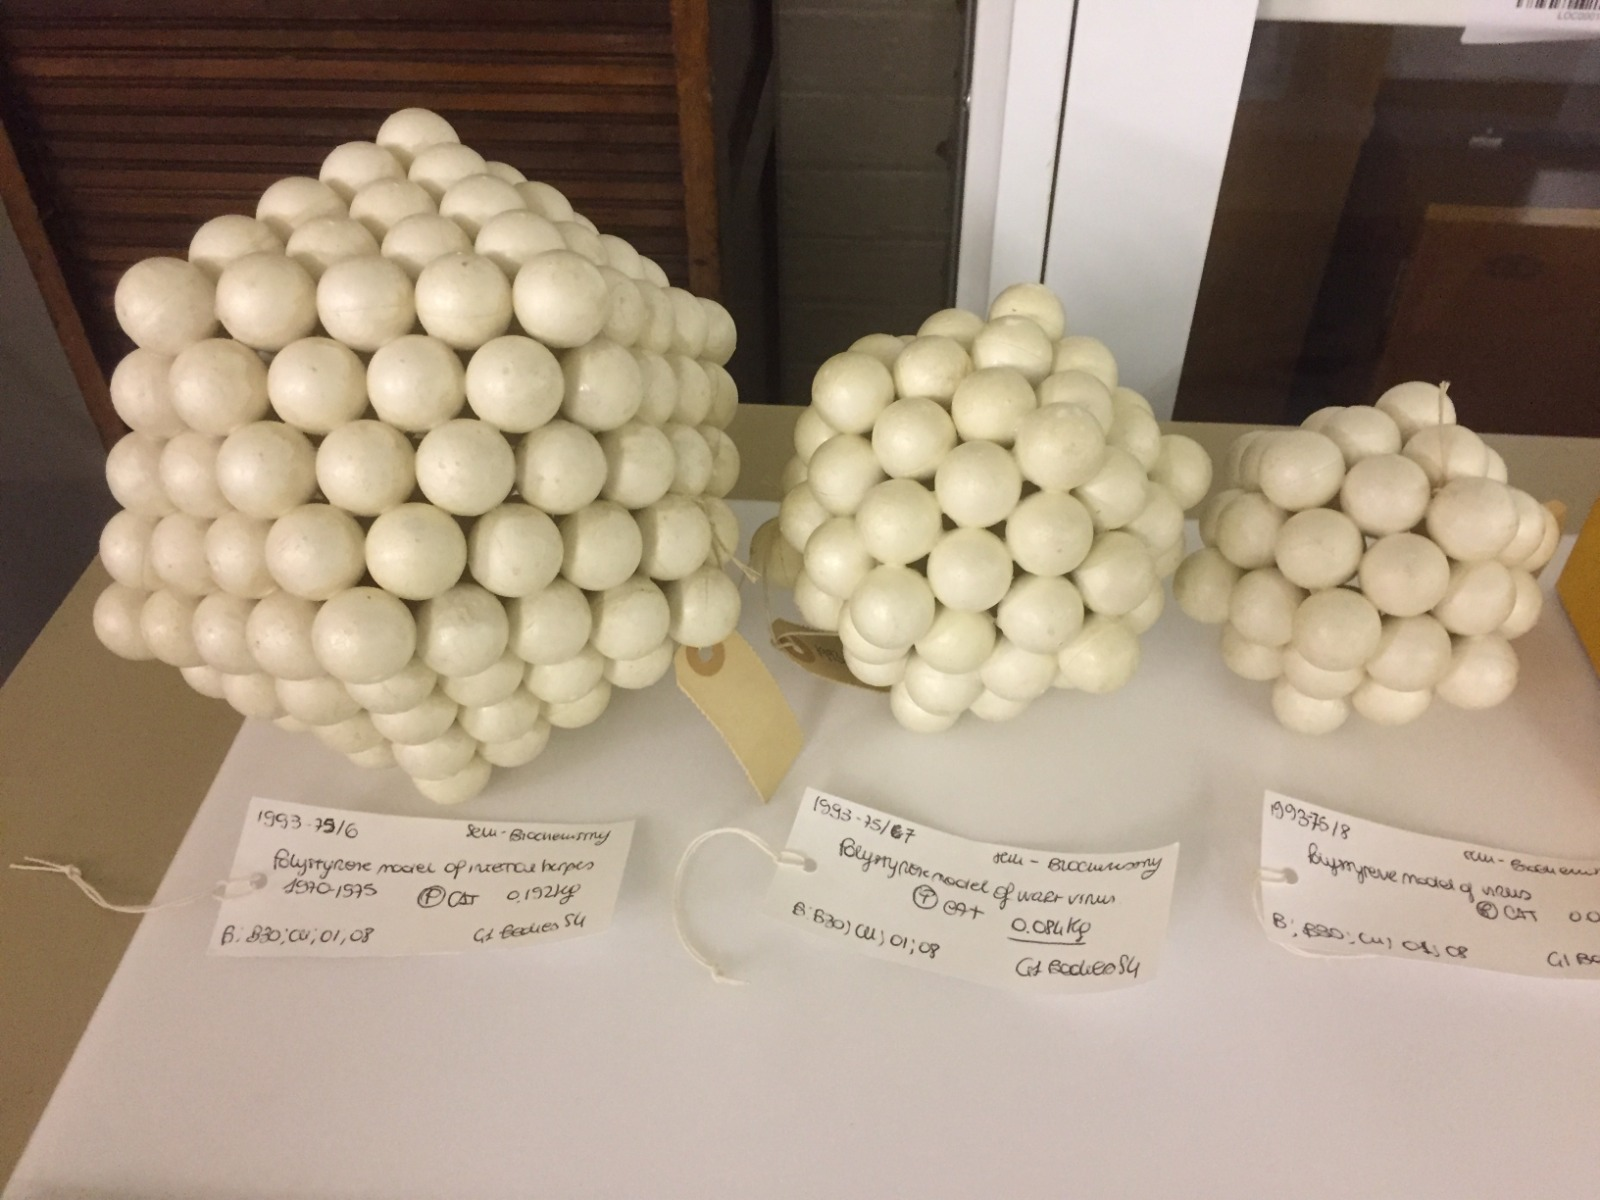 Photograph of the virus models Almeida built out of polystyrene for teaching purposes